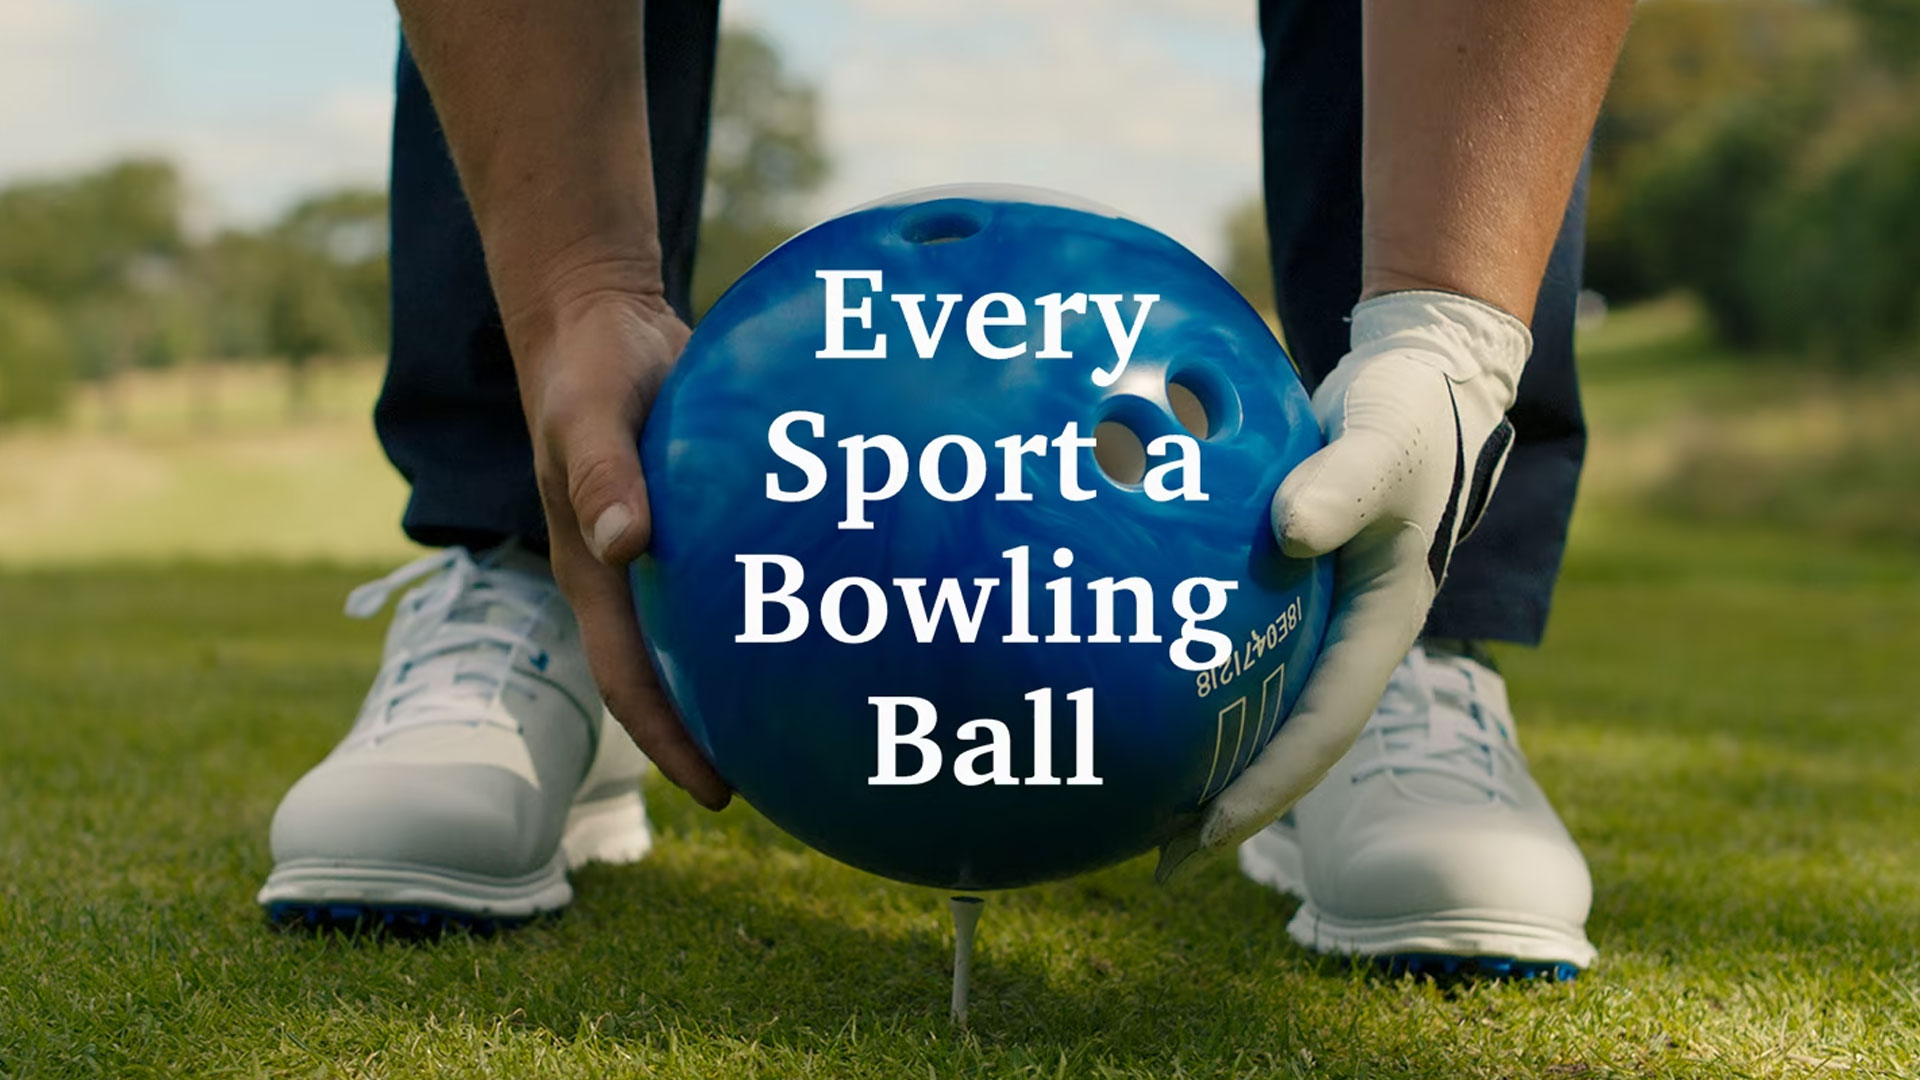 Every Sport a Bowling Ball